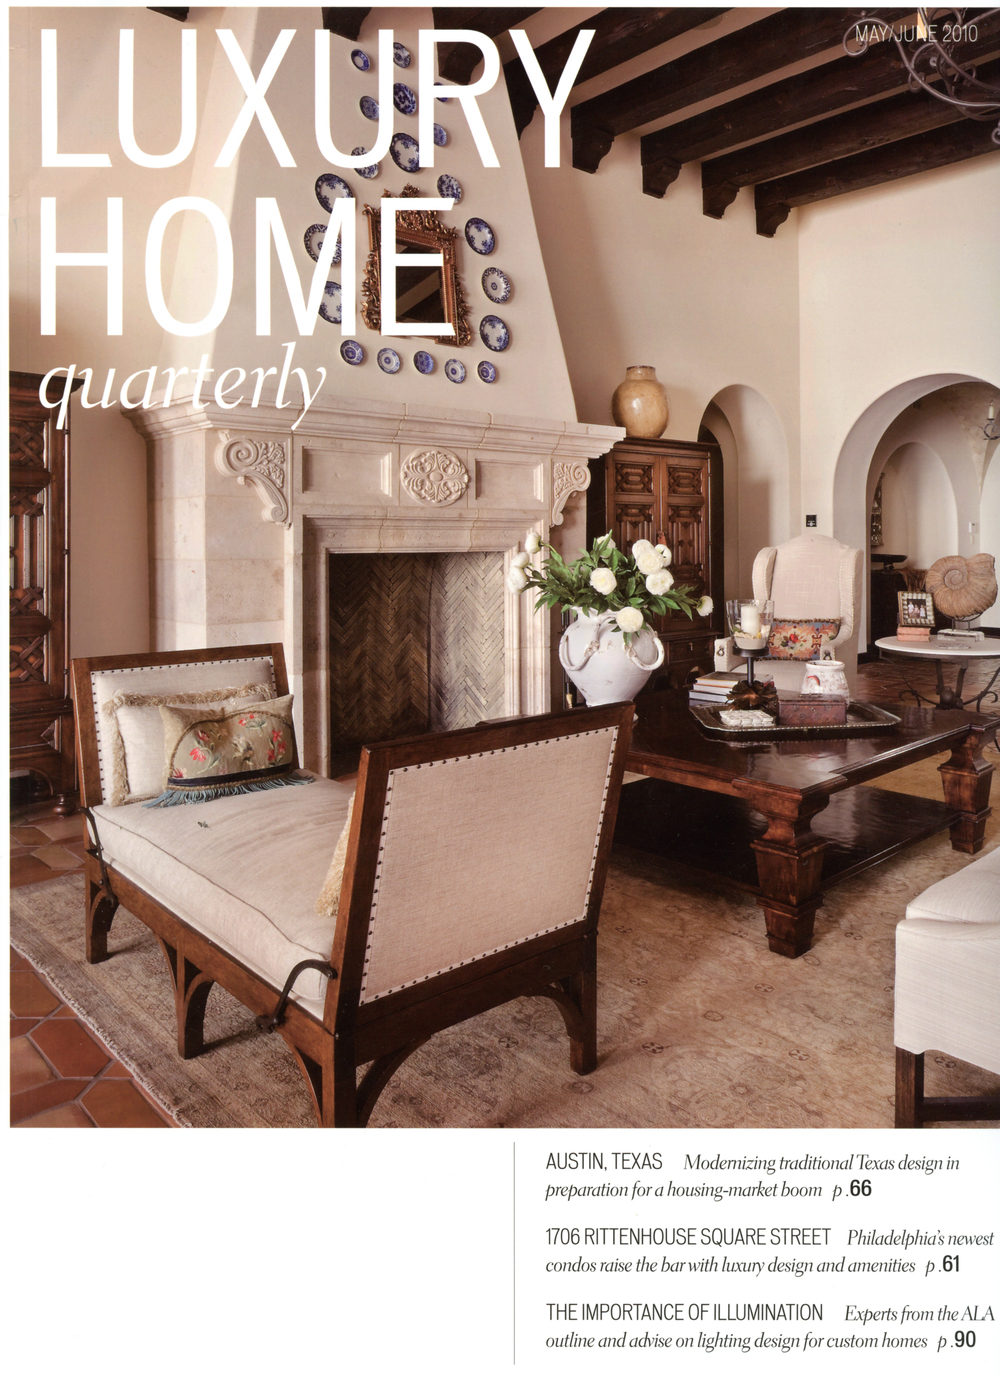 Luxuryhomequarterly001 jpg